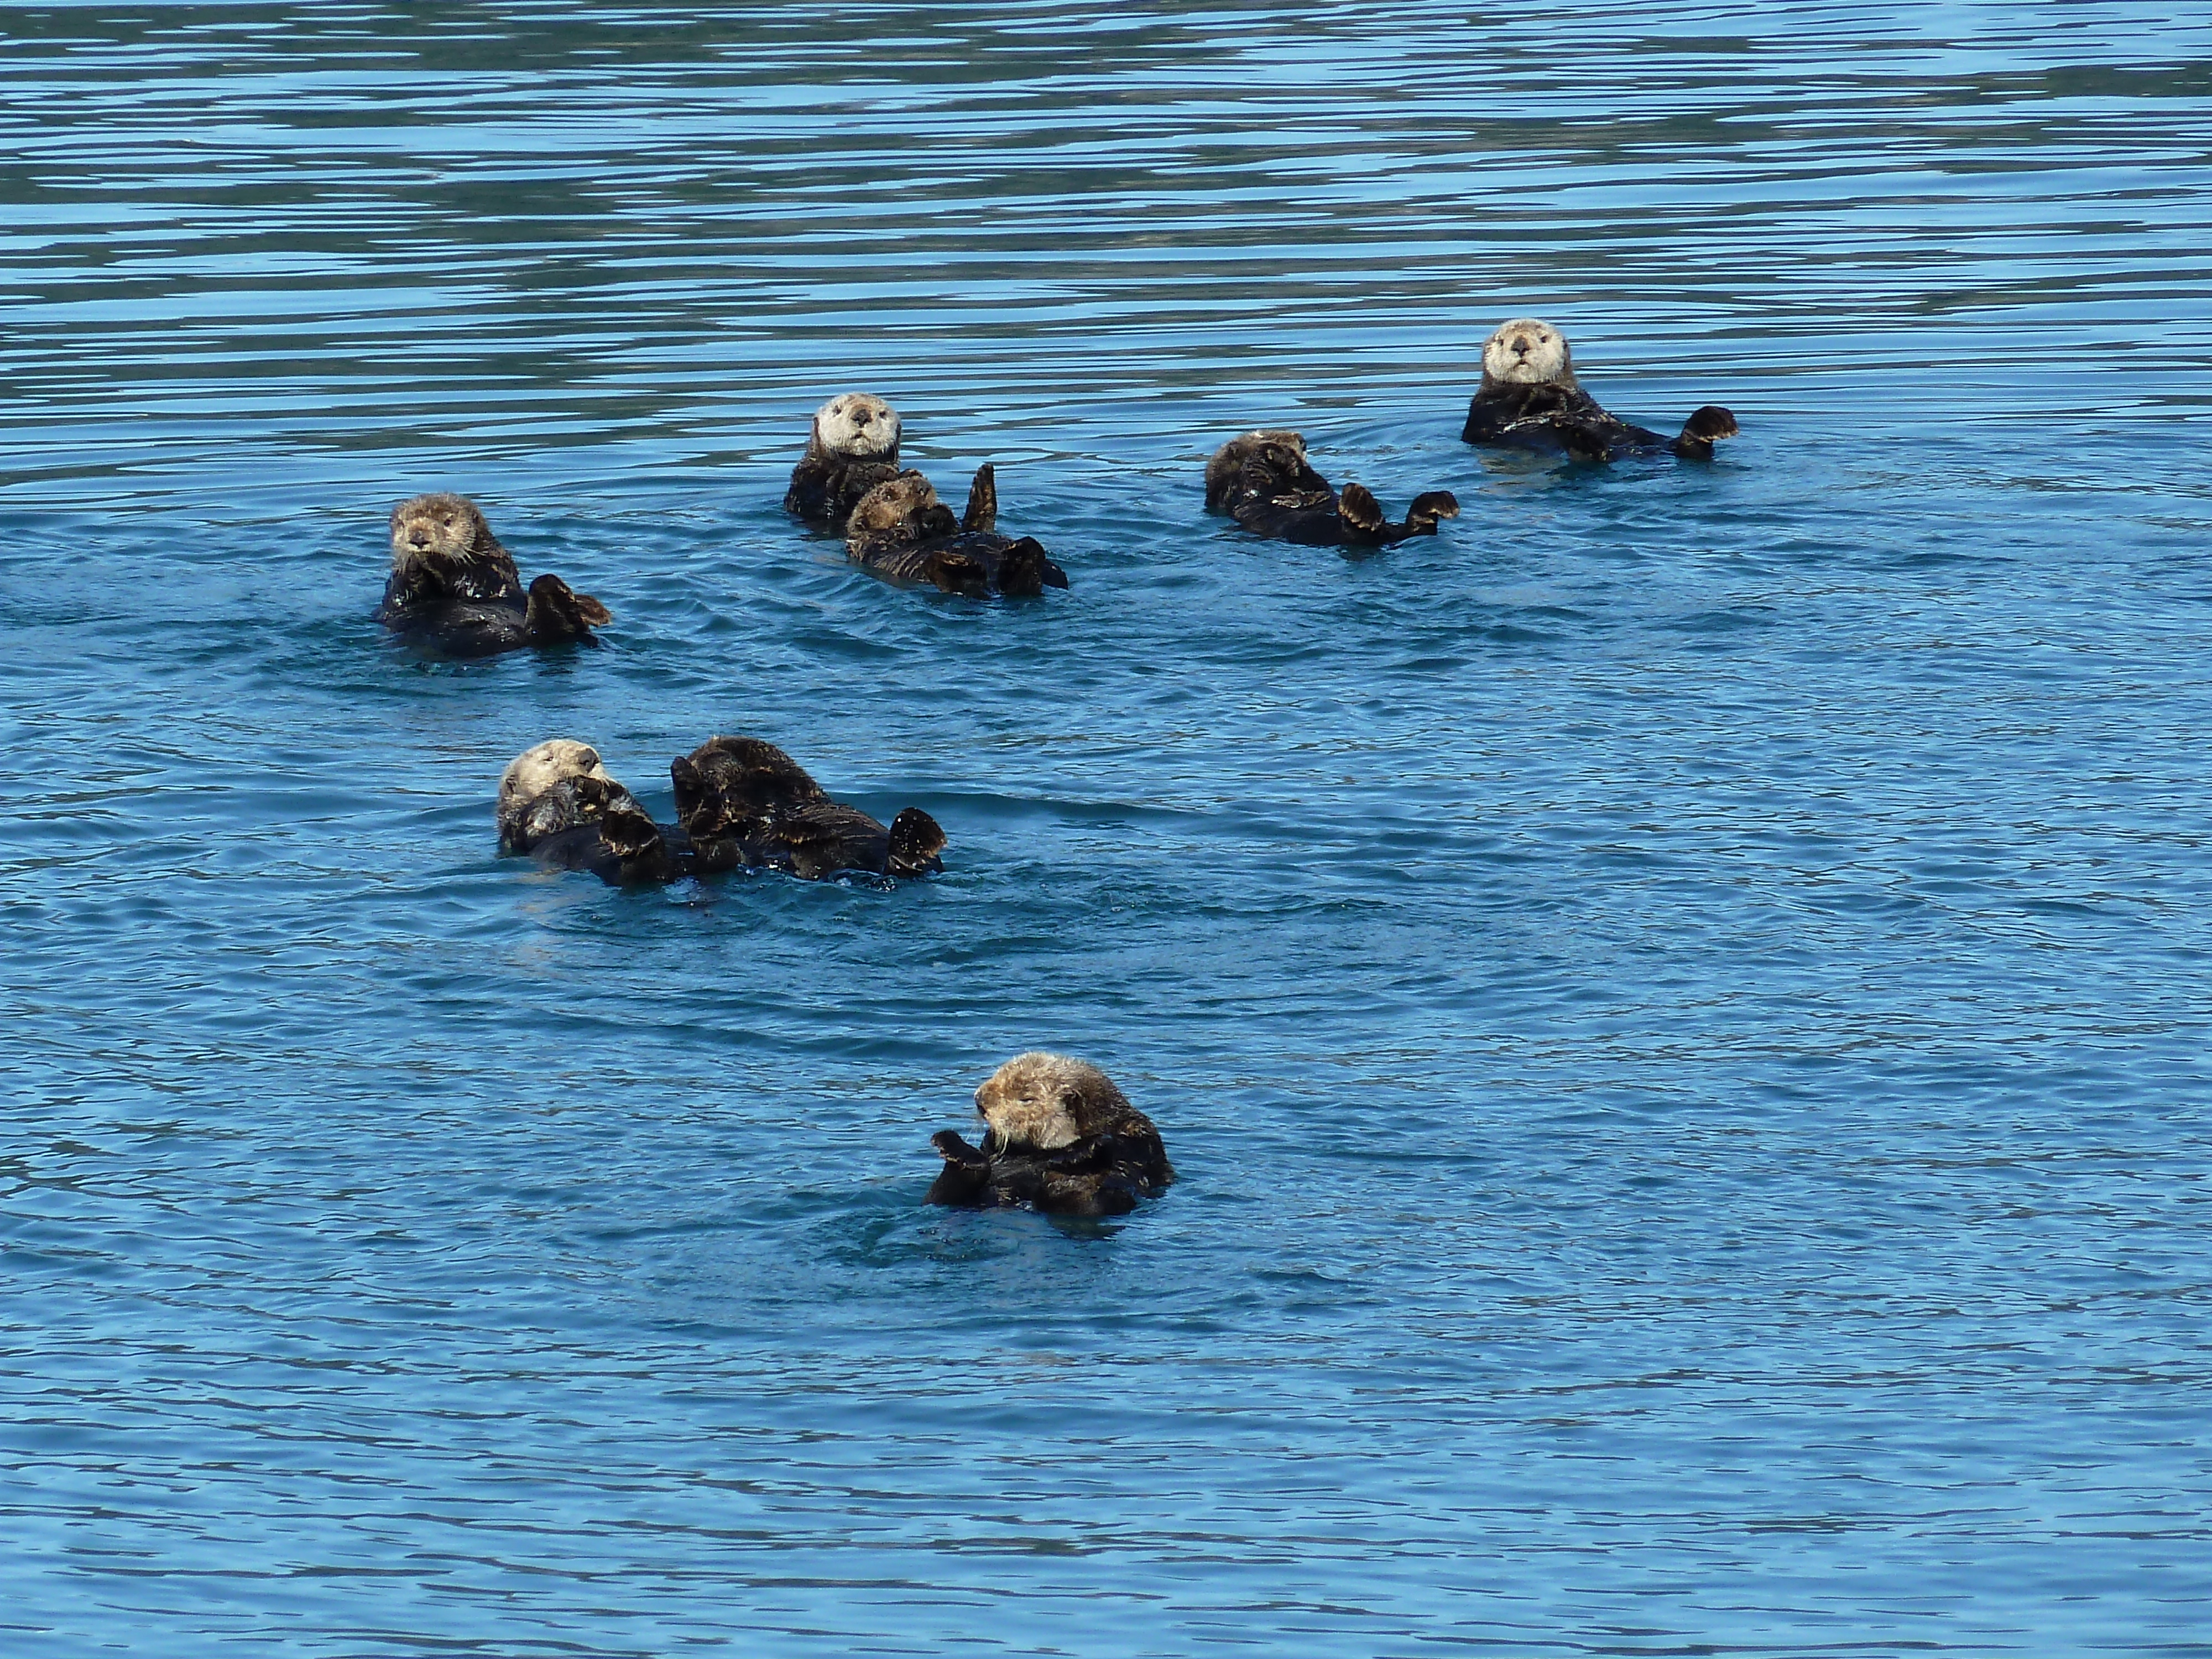 Sea otters floating in the water